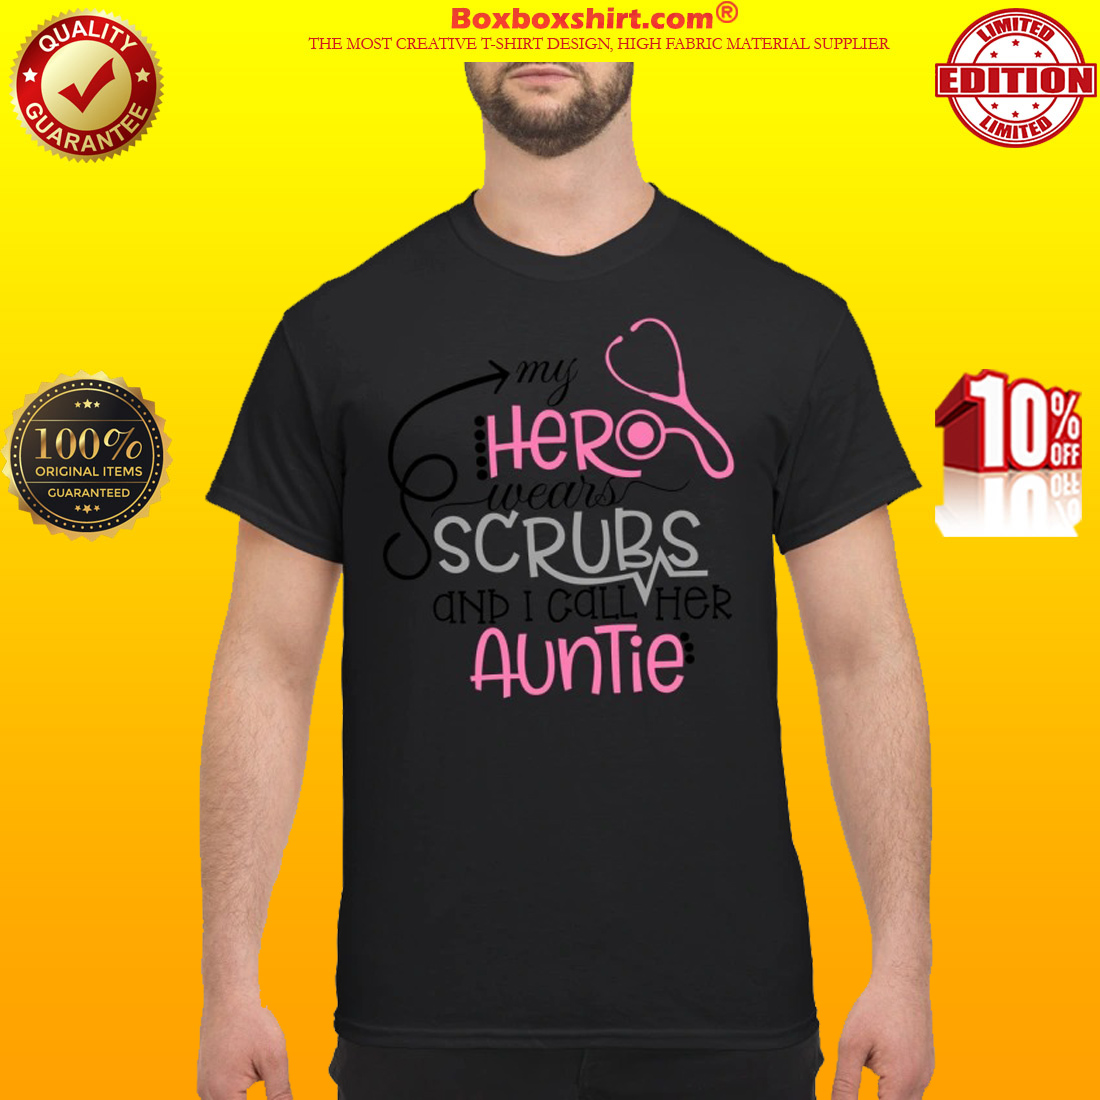 My heroes wears scrubs and I call her auntie classic shirt